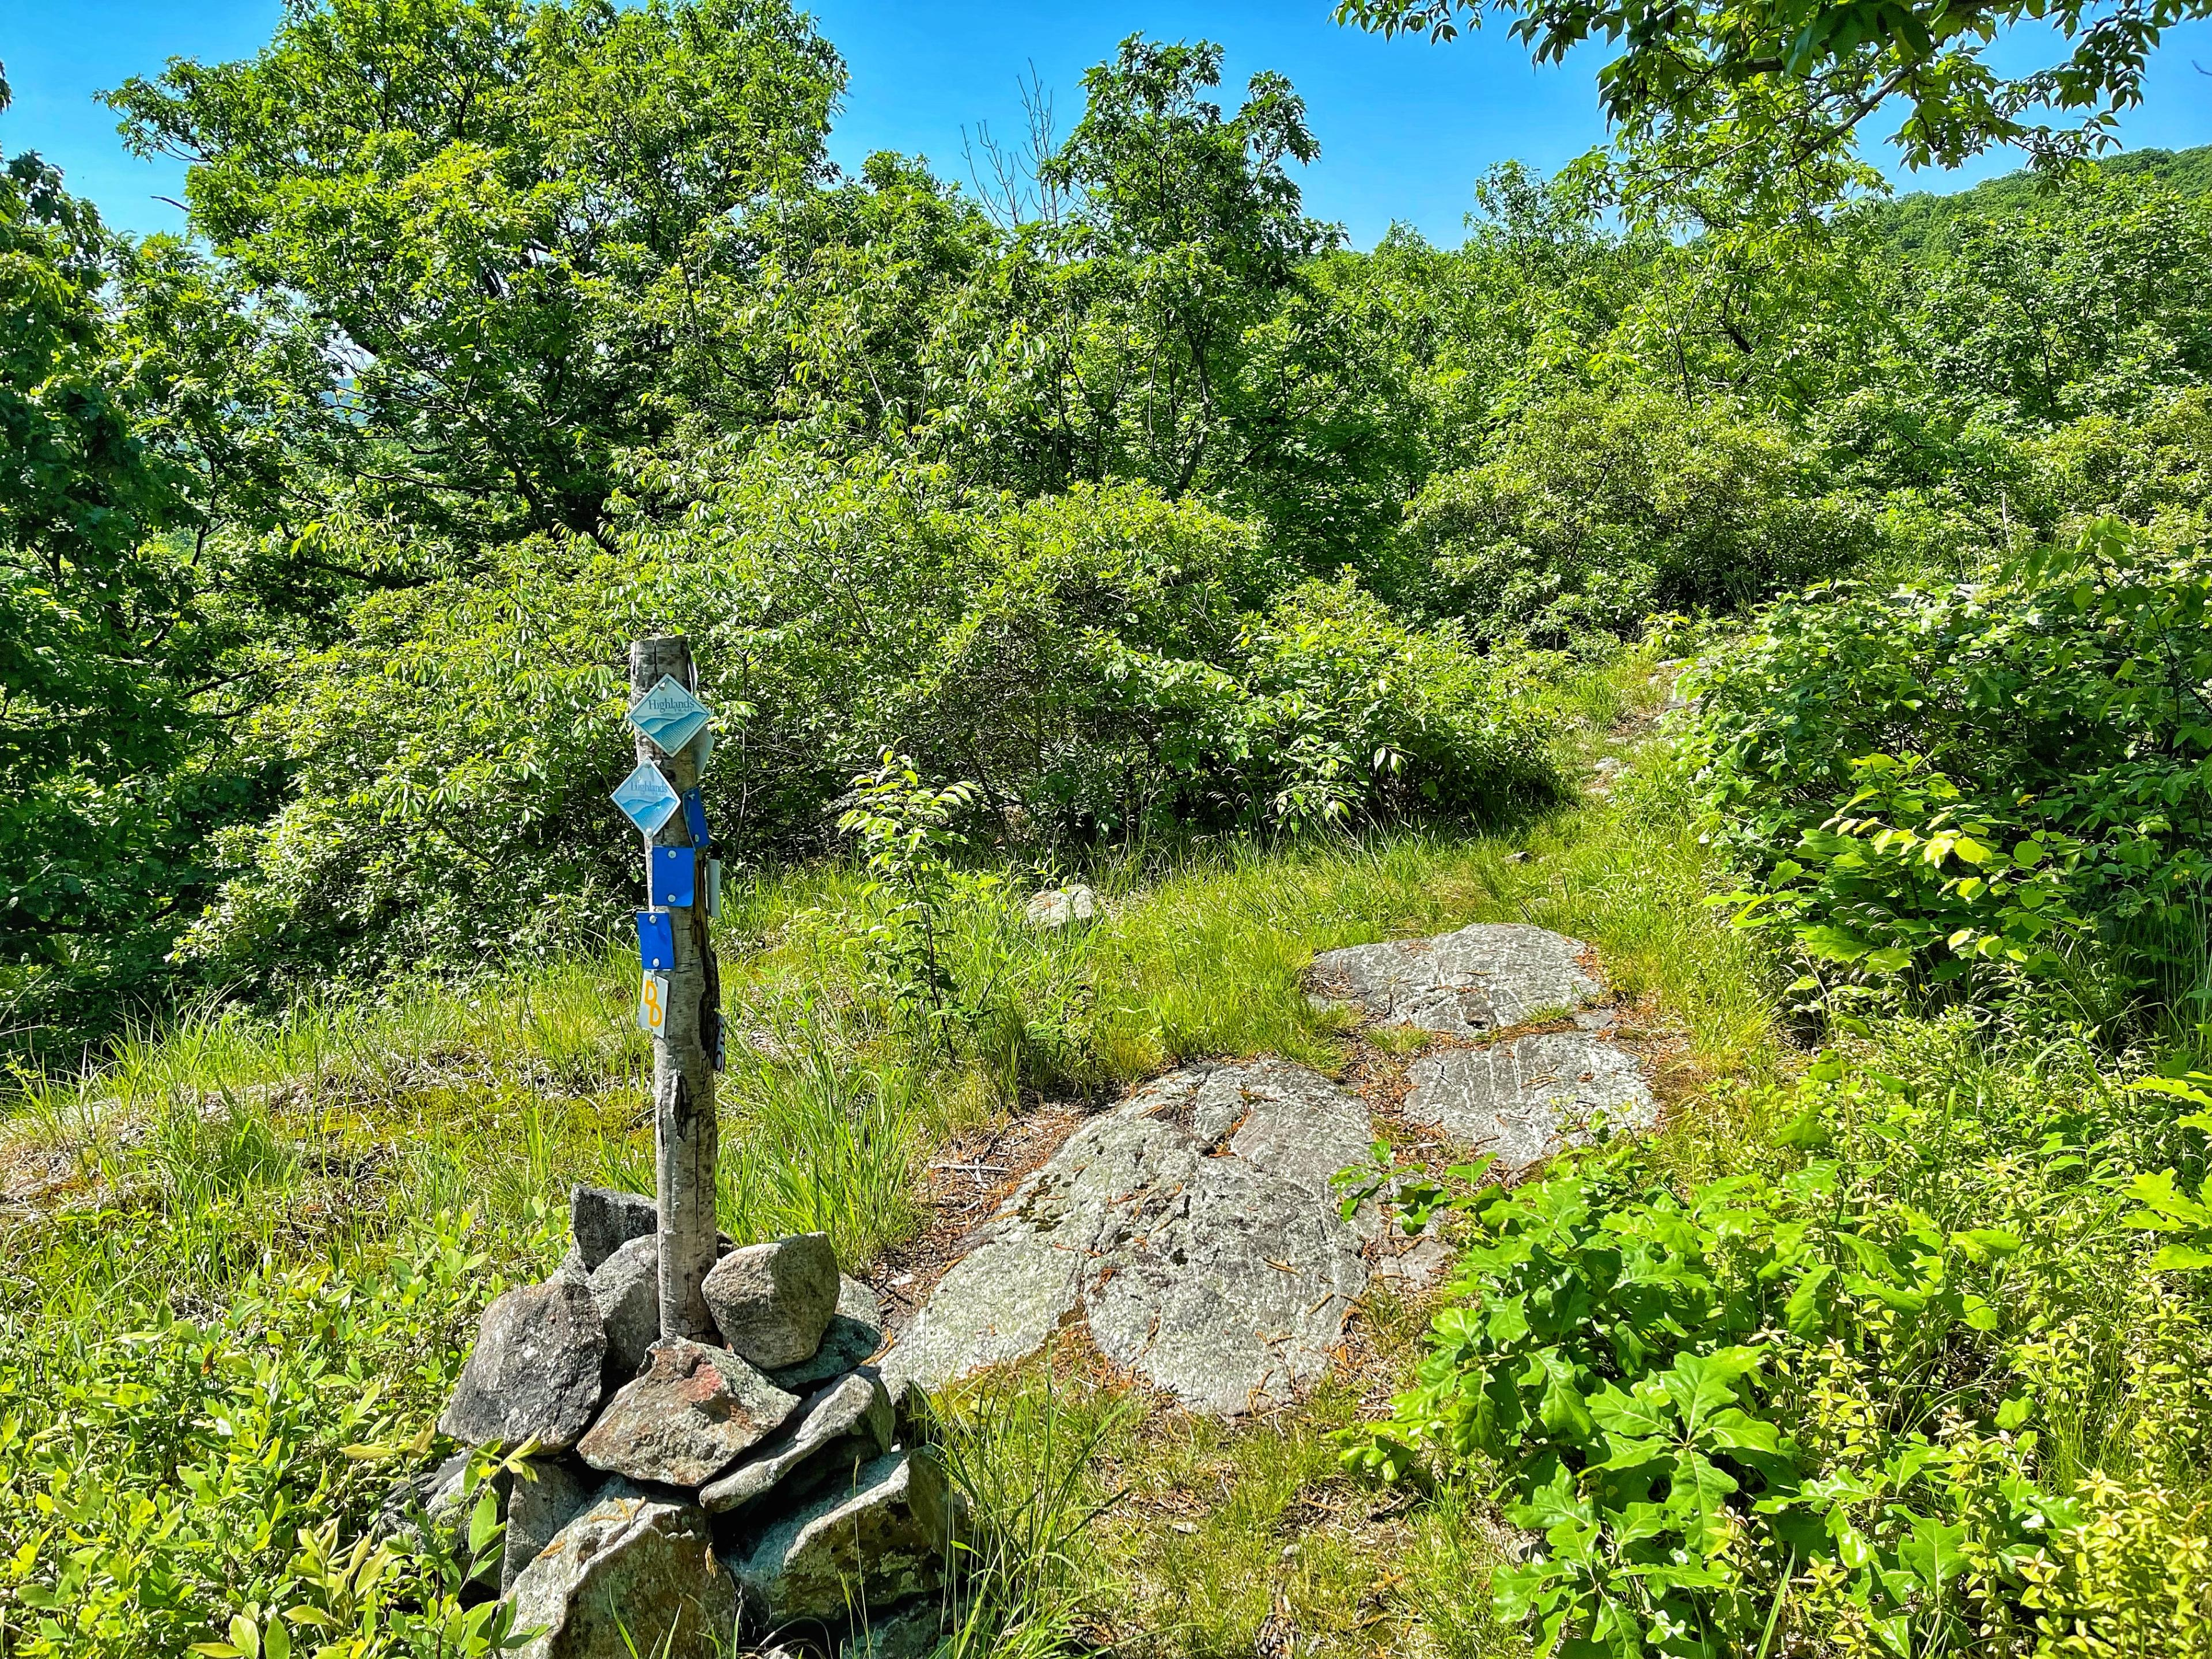 Doris Duke Trail junction with Allis and Highlands Trail